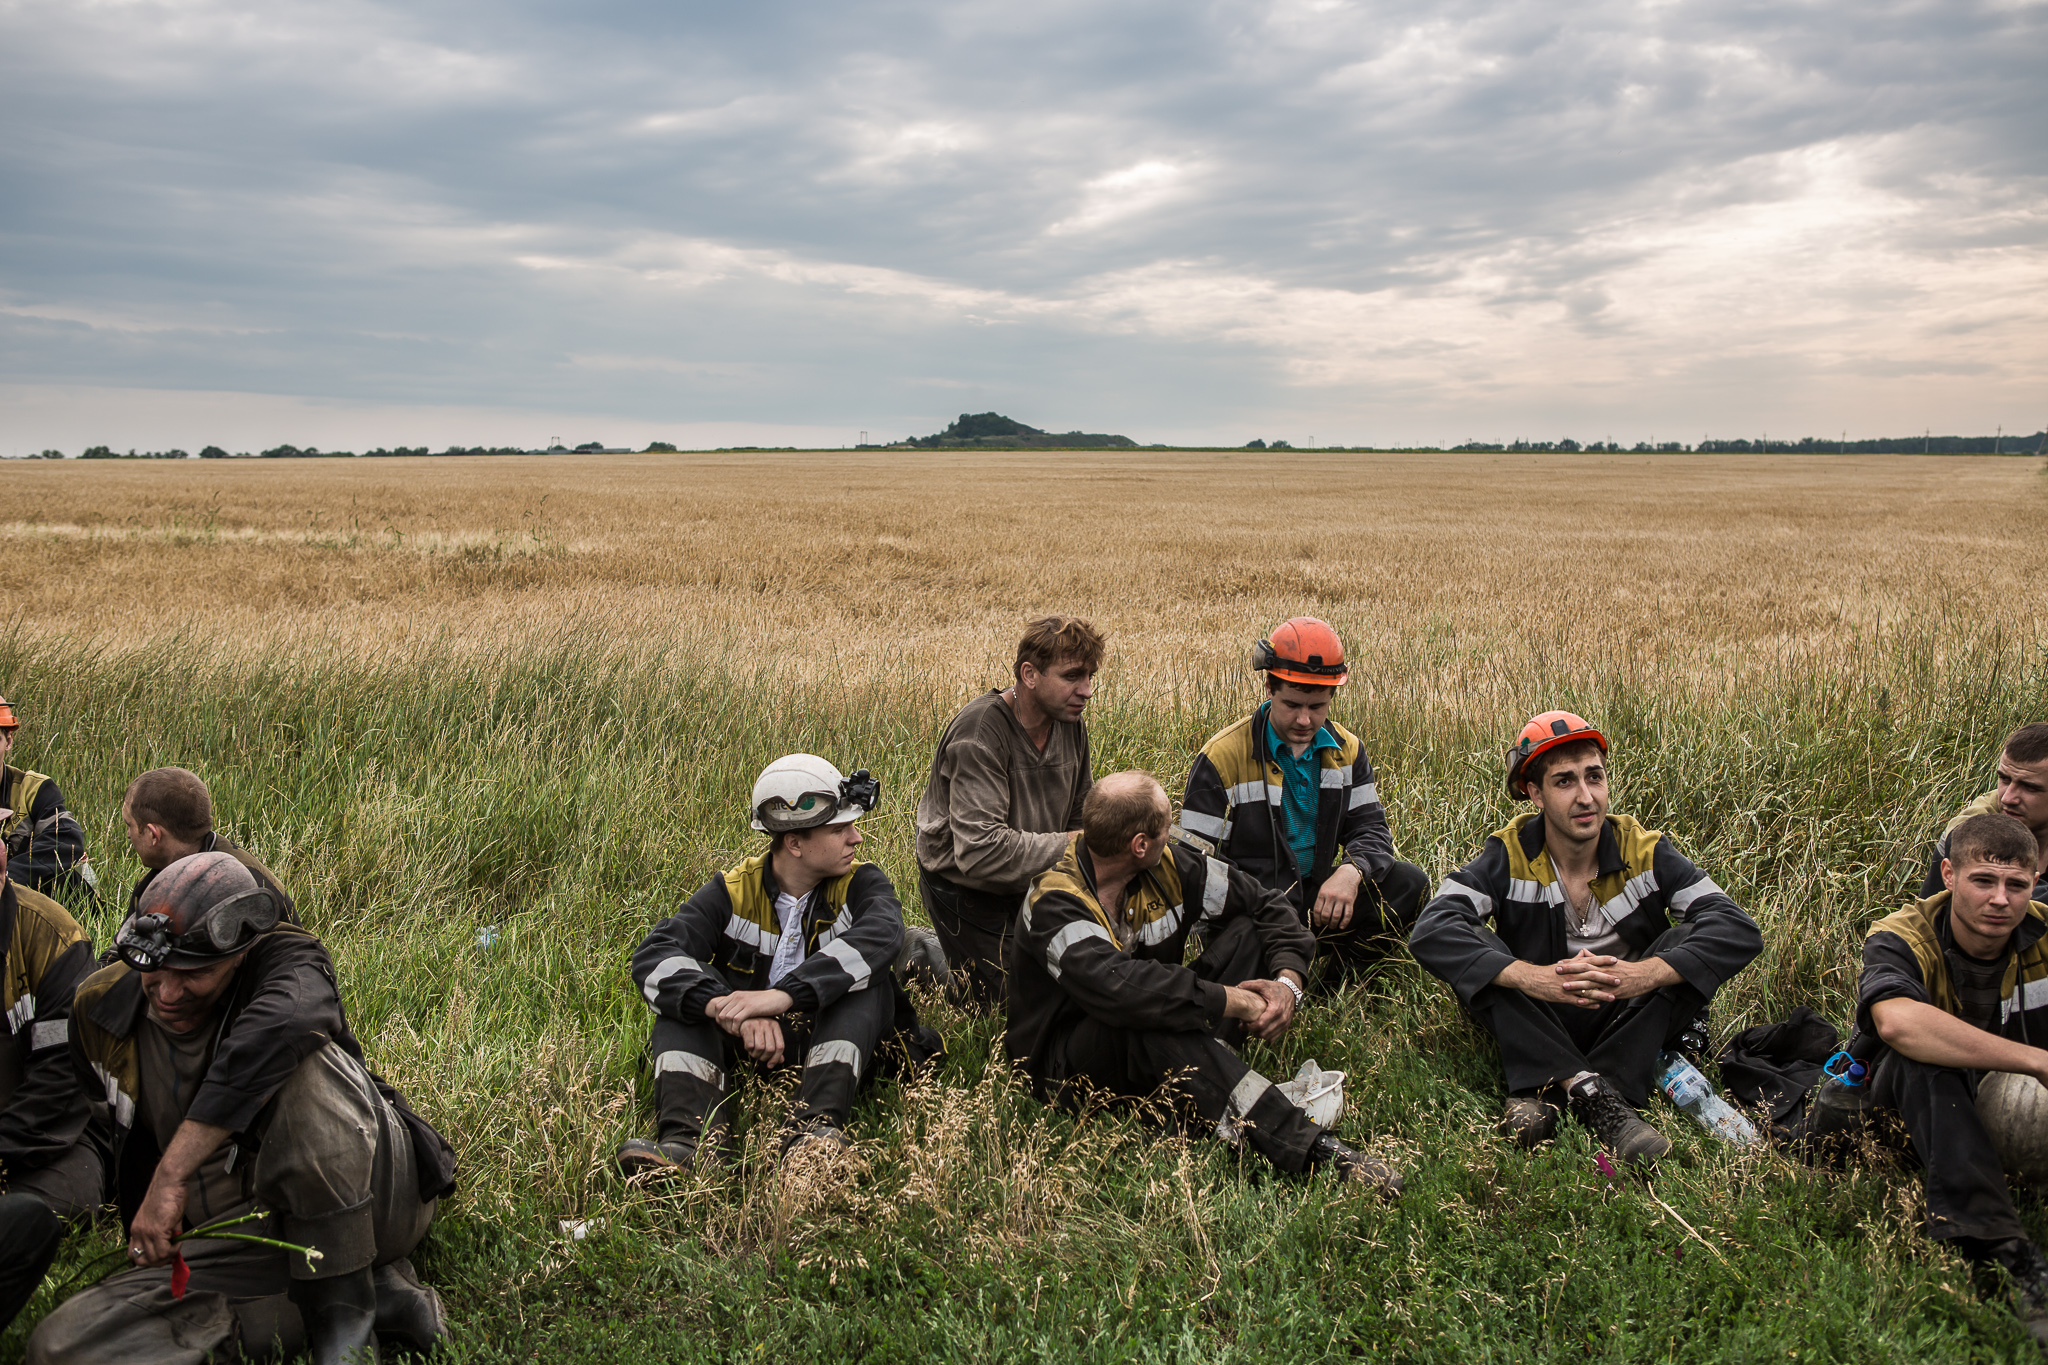 A group of coal miners takes a break after searching fields looking for remnants of Malaysia Airlines flight MH 17 on July 19, 2014 in Grabovo, Ukraine. Malaysia Airlines flight MH17 was travelling from Amsterdam to Kuala Lumpur when it crashed killing all 298 on board including 80 children. The aircraft was allegedly shot down by a missile and investigations continue over the perpetrators of the attack.